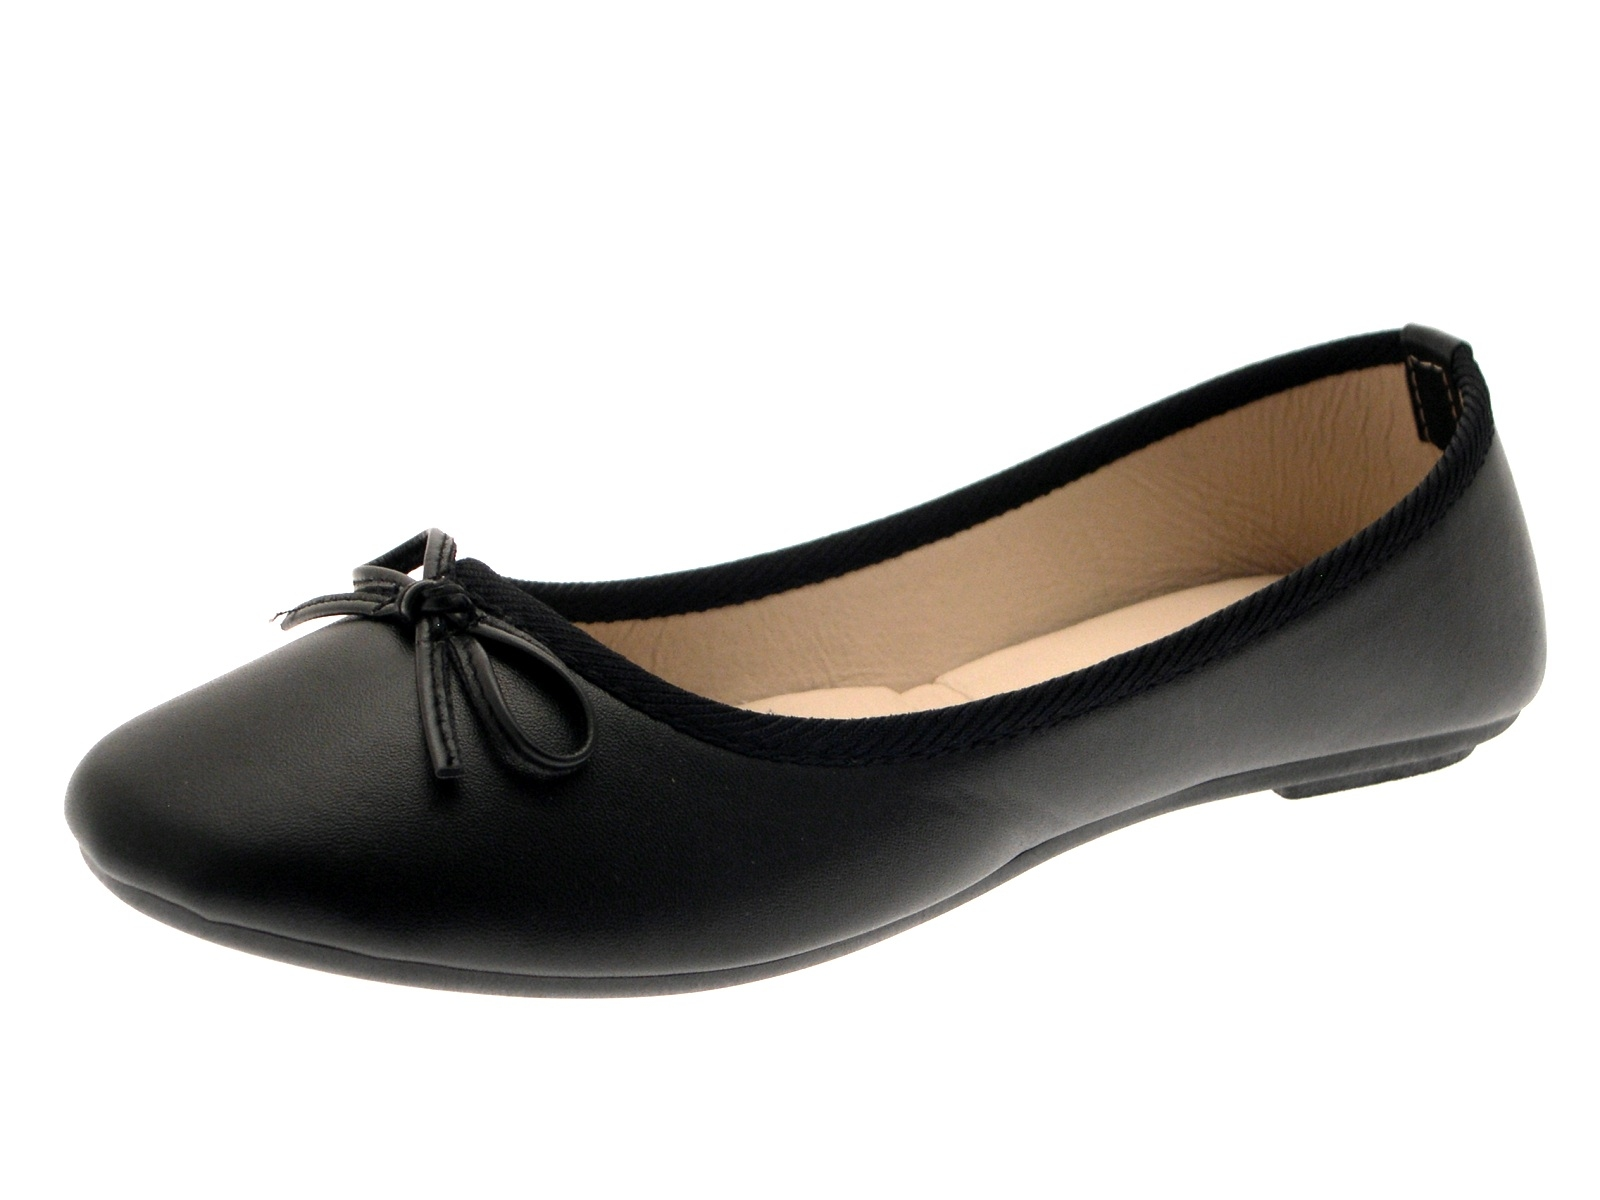 Black Patent Leather Dolly Shoes